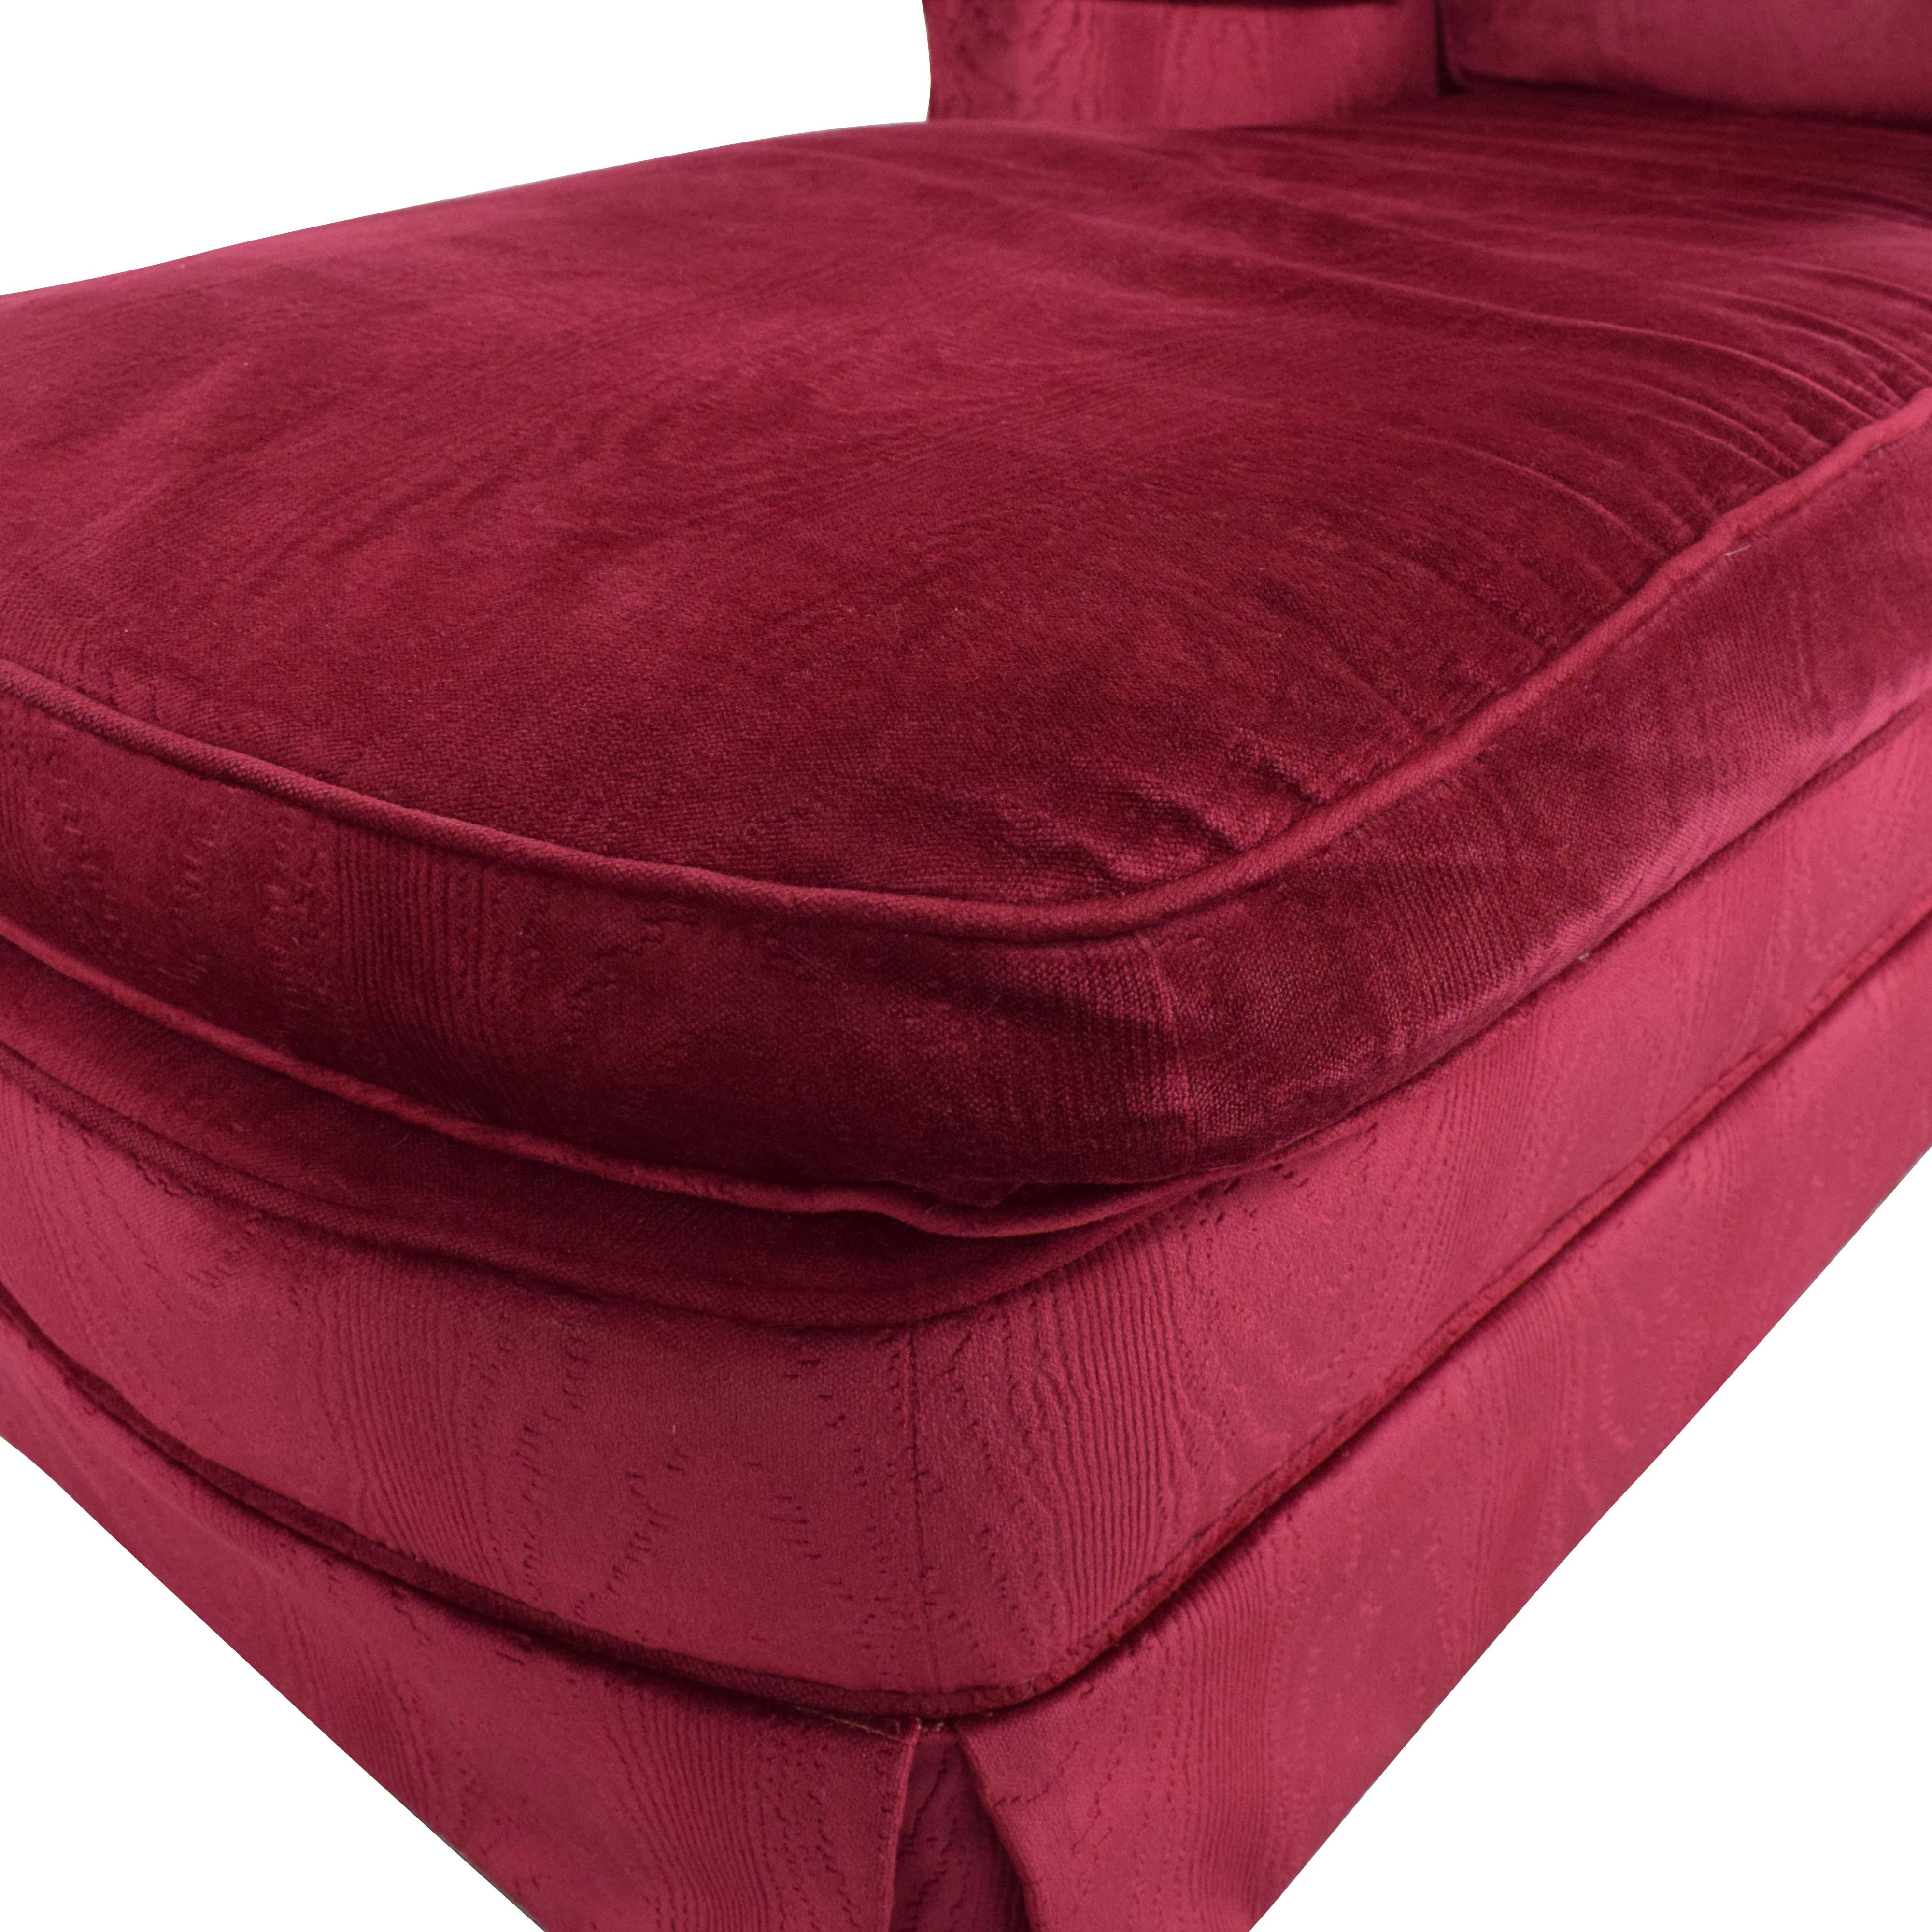 Vintage Upholstered Chaise on sale